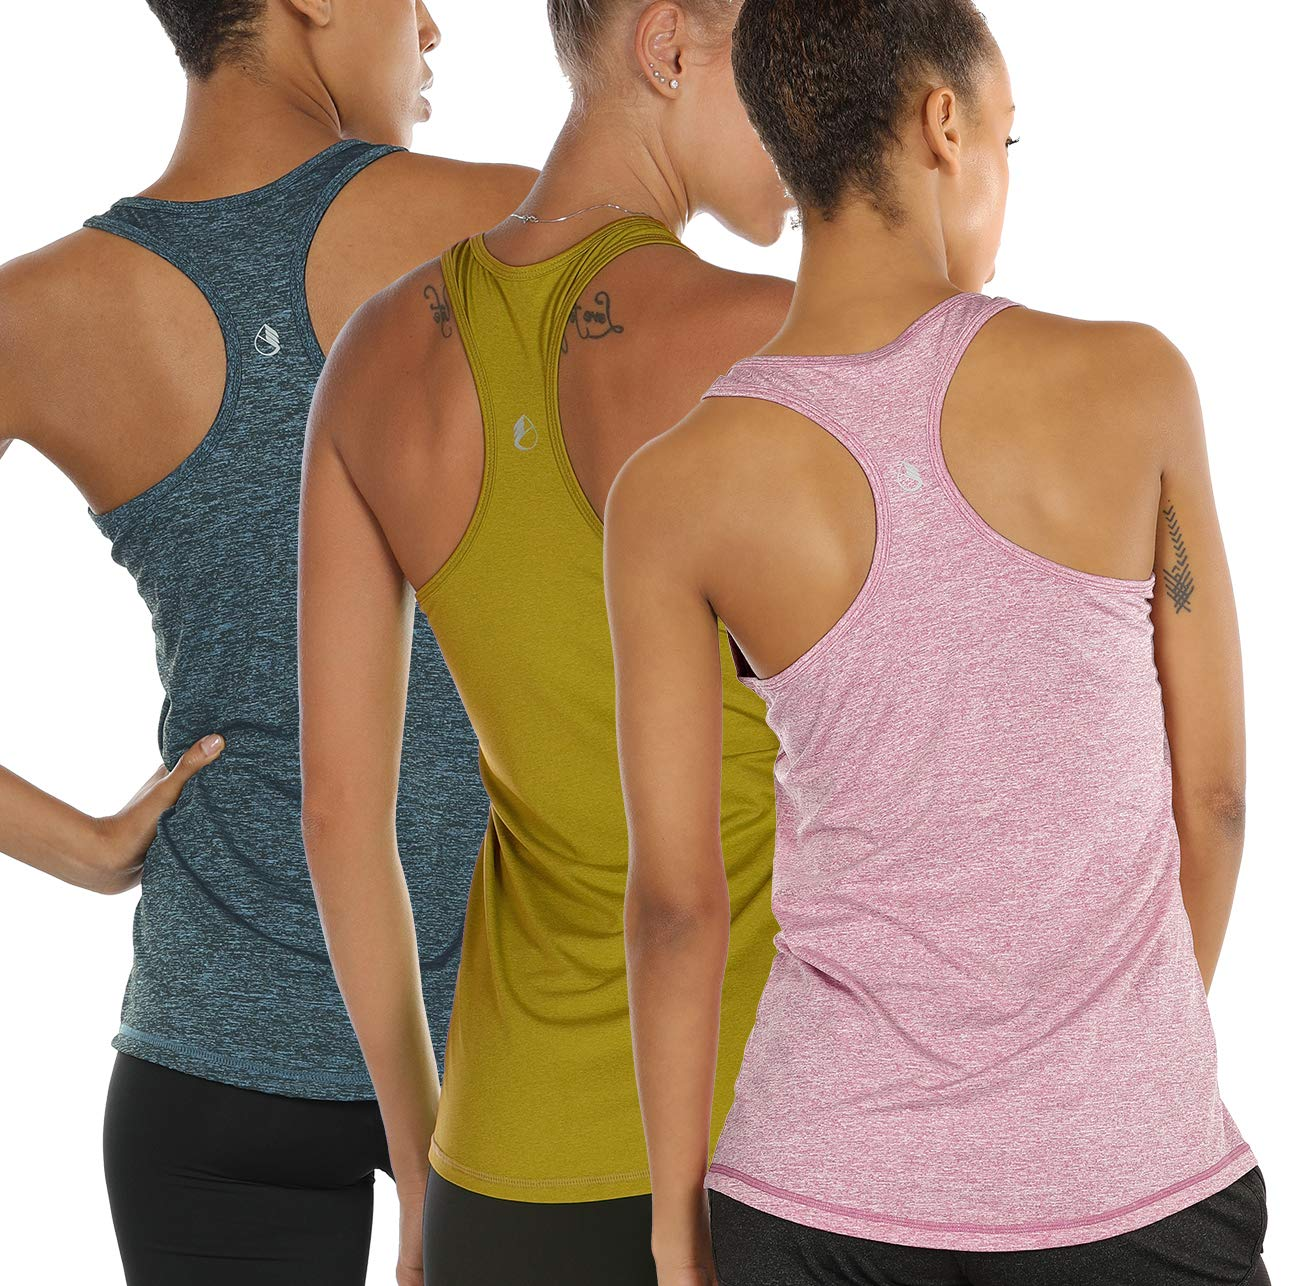 icyzone Workout Tank Tops for Women - Racerback Athletic Yoga Tops, Running Exercise Gym Shirts(Pack of 3) (M, Mustard/Lilac Snow/Teal) by icyzone